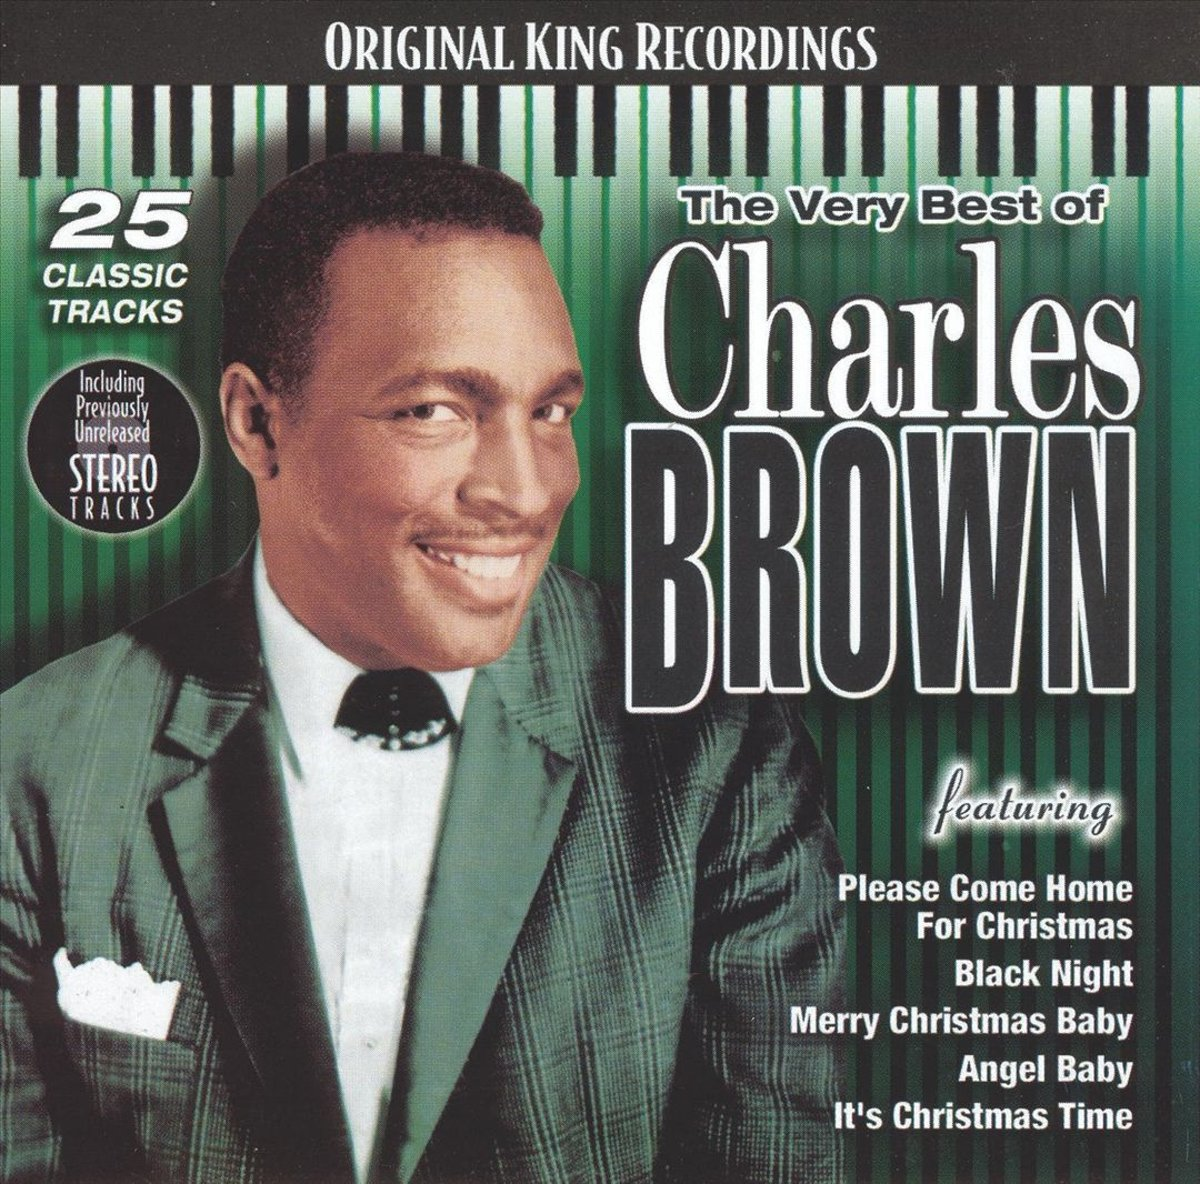 bol.com | The Very Best of Charles Brown, Charles Brown | CD (album) | Muziek